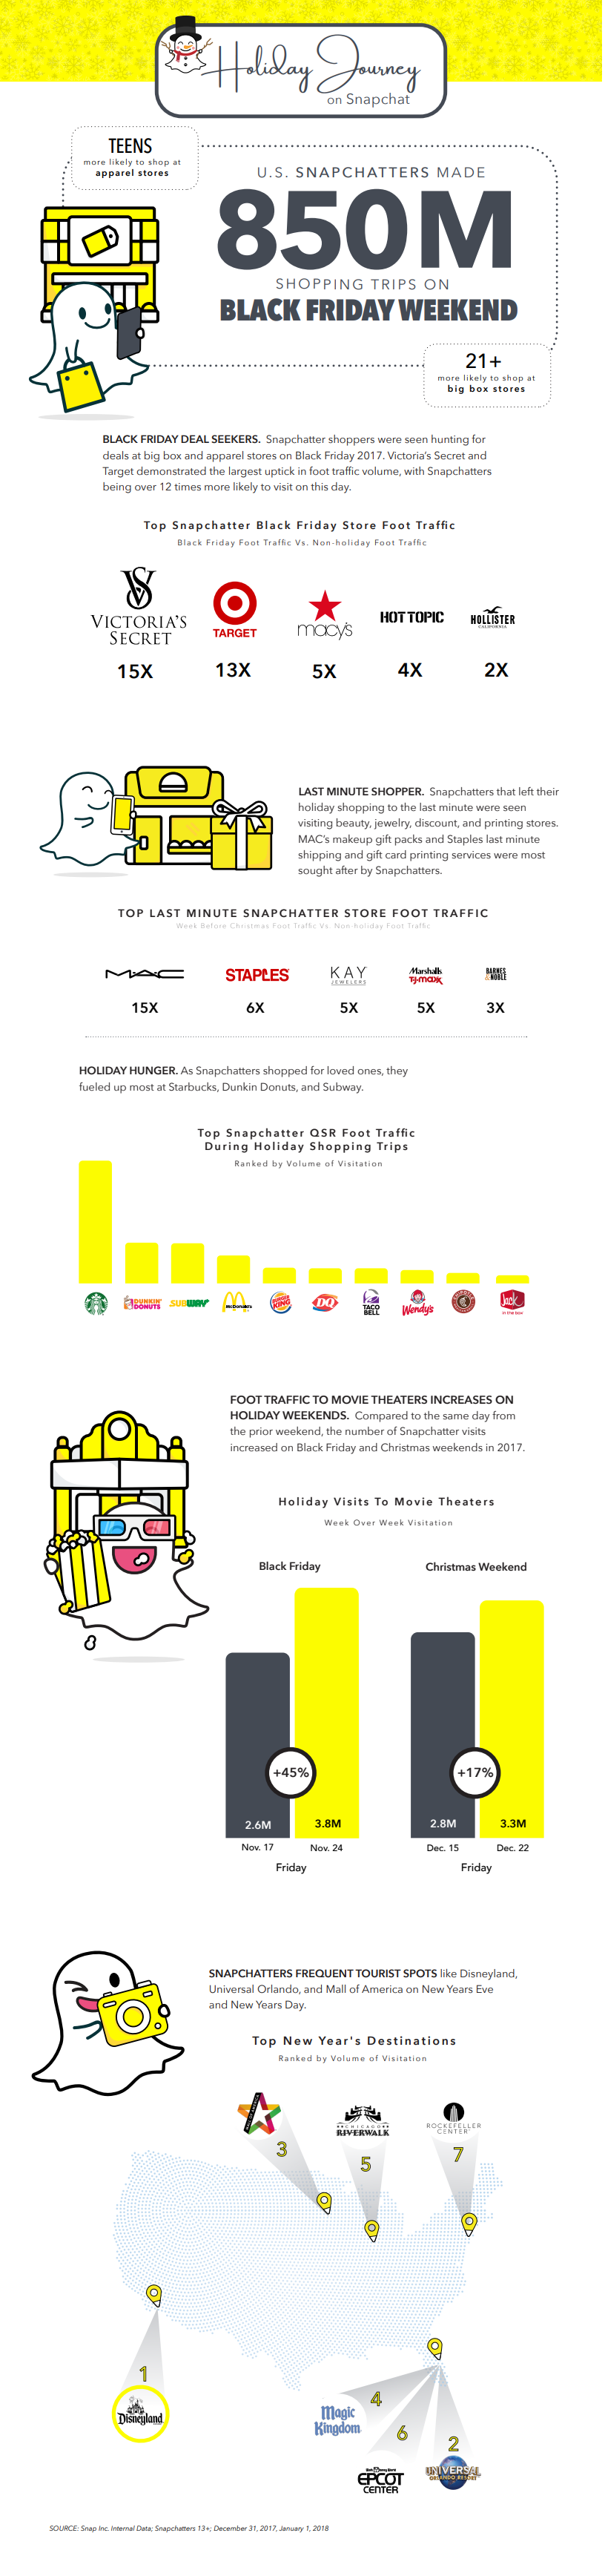 Snapchat user behaviors over the holiday period infographic